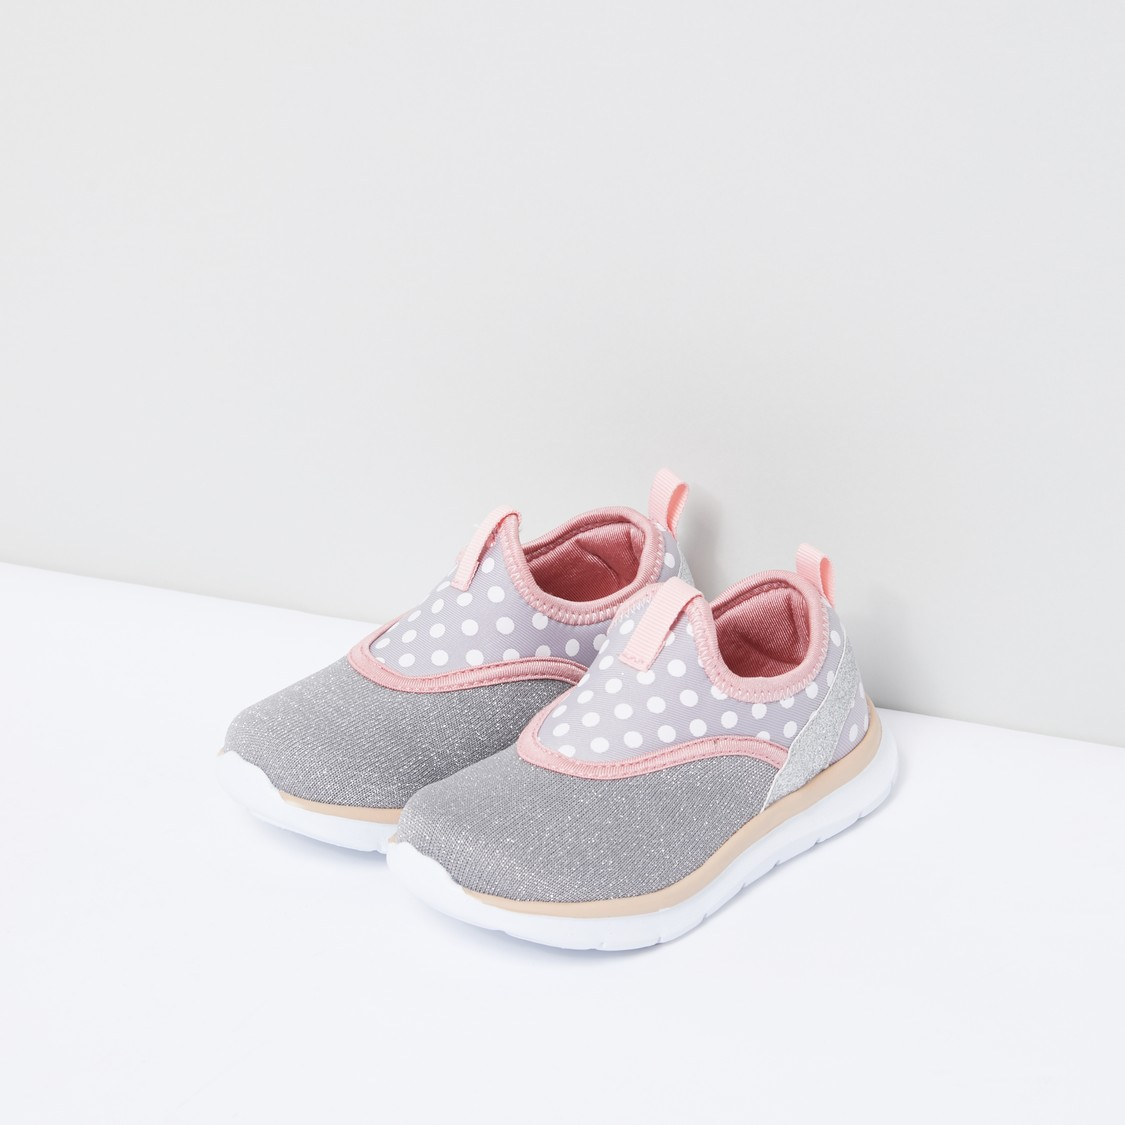 Polka Dot Printed Slip-On Shoes with Pull Tab and Textured Pattern